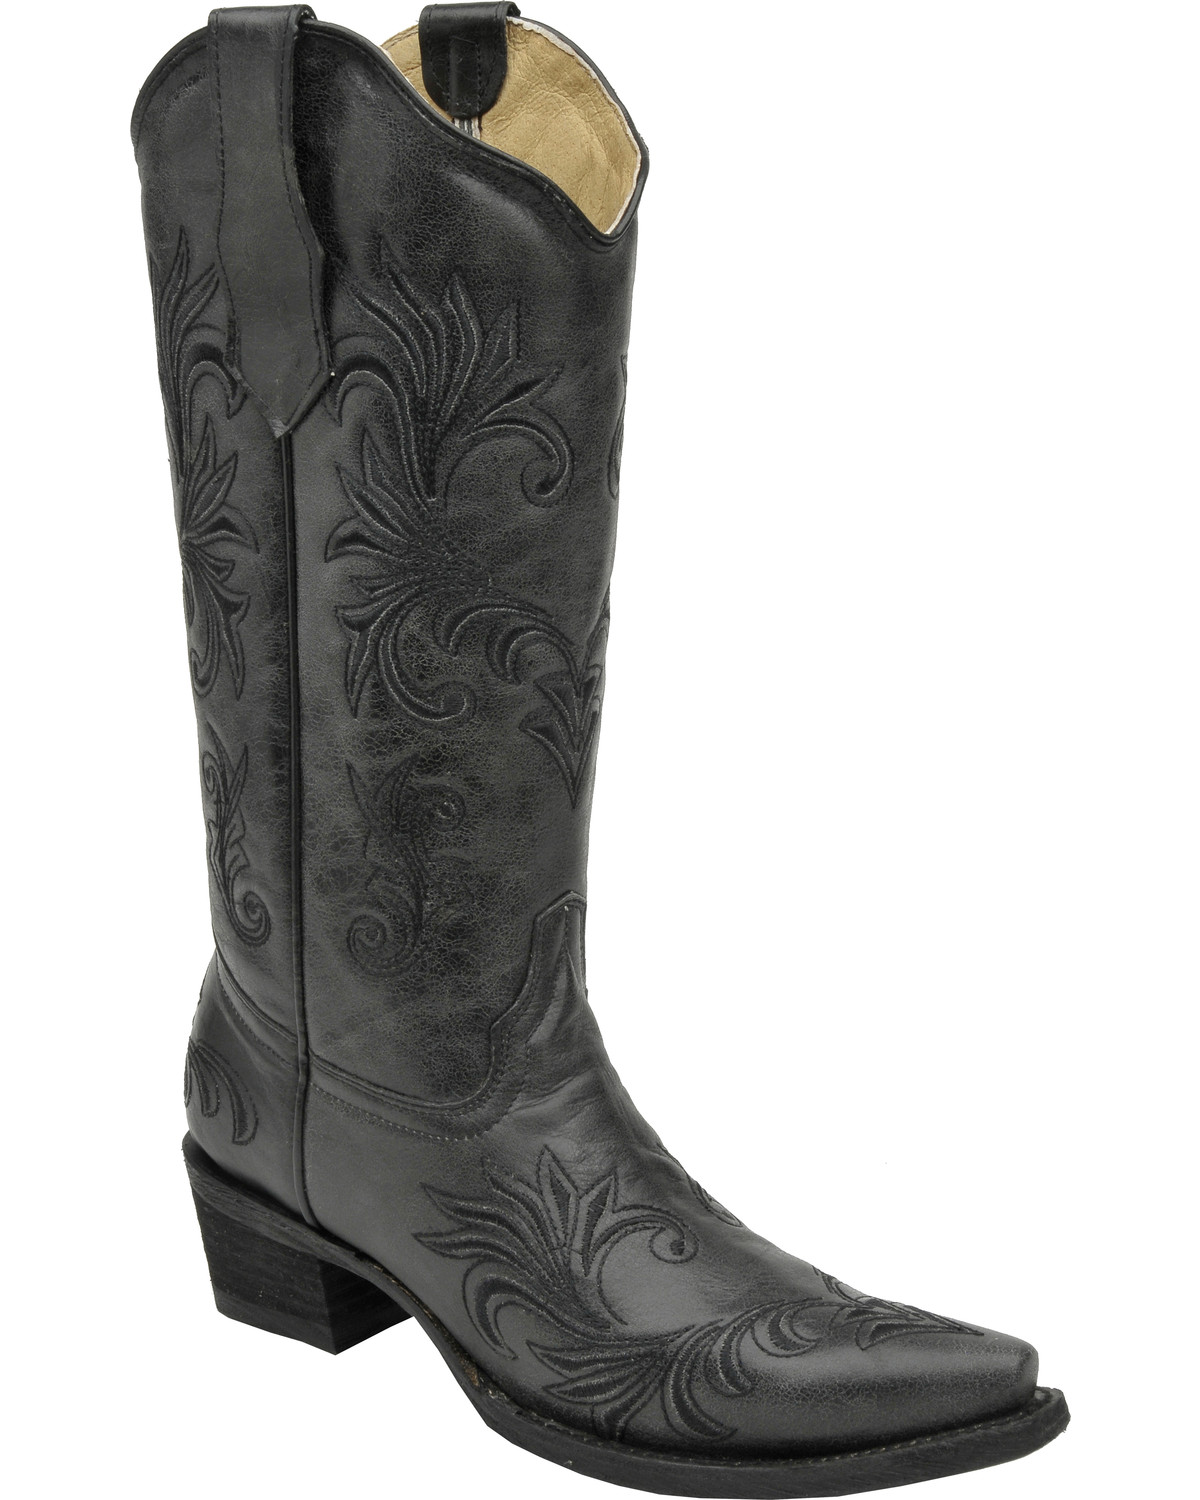 Circle G Women S Diamond Embroidered Cowgirl Boot Square: Circle G Women's Filigree Western Boots